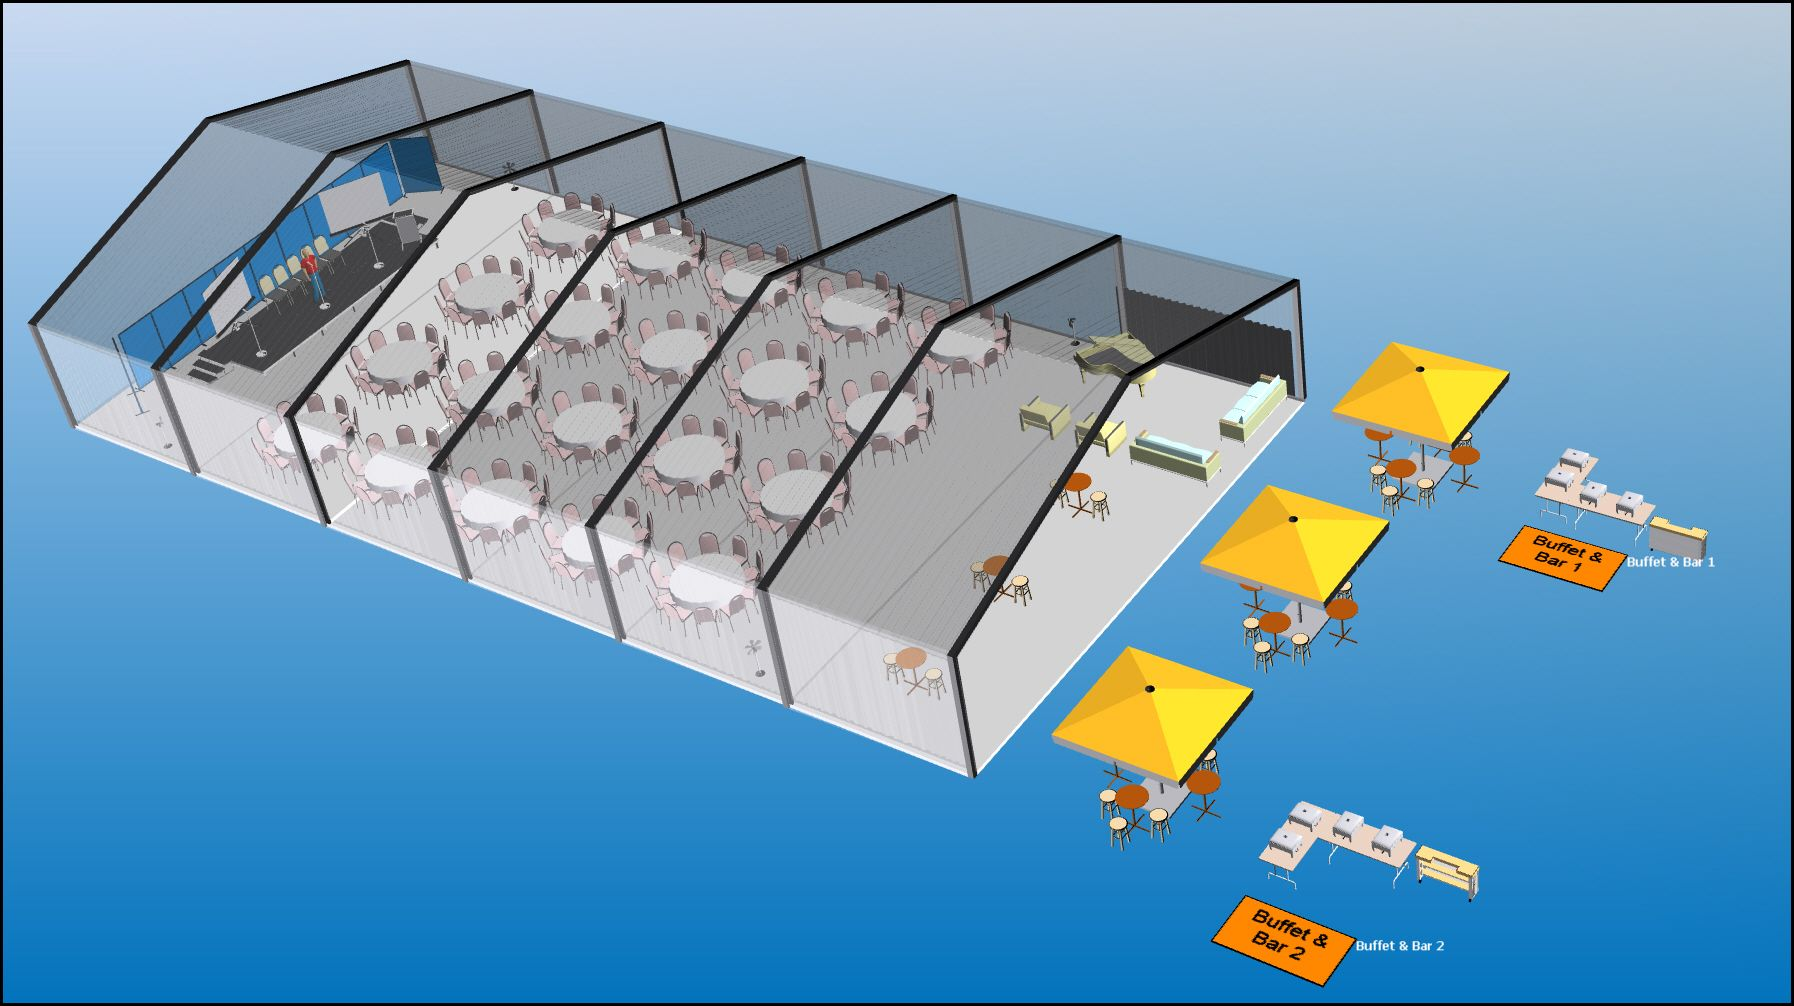 Pin by Visio Group / CADplanners on 3D How to plan